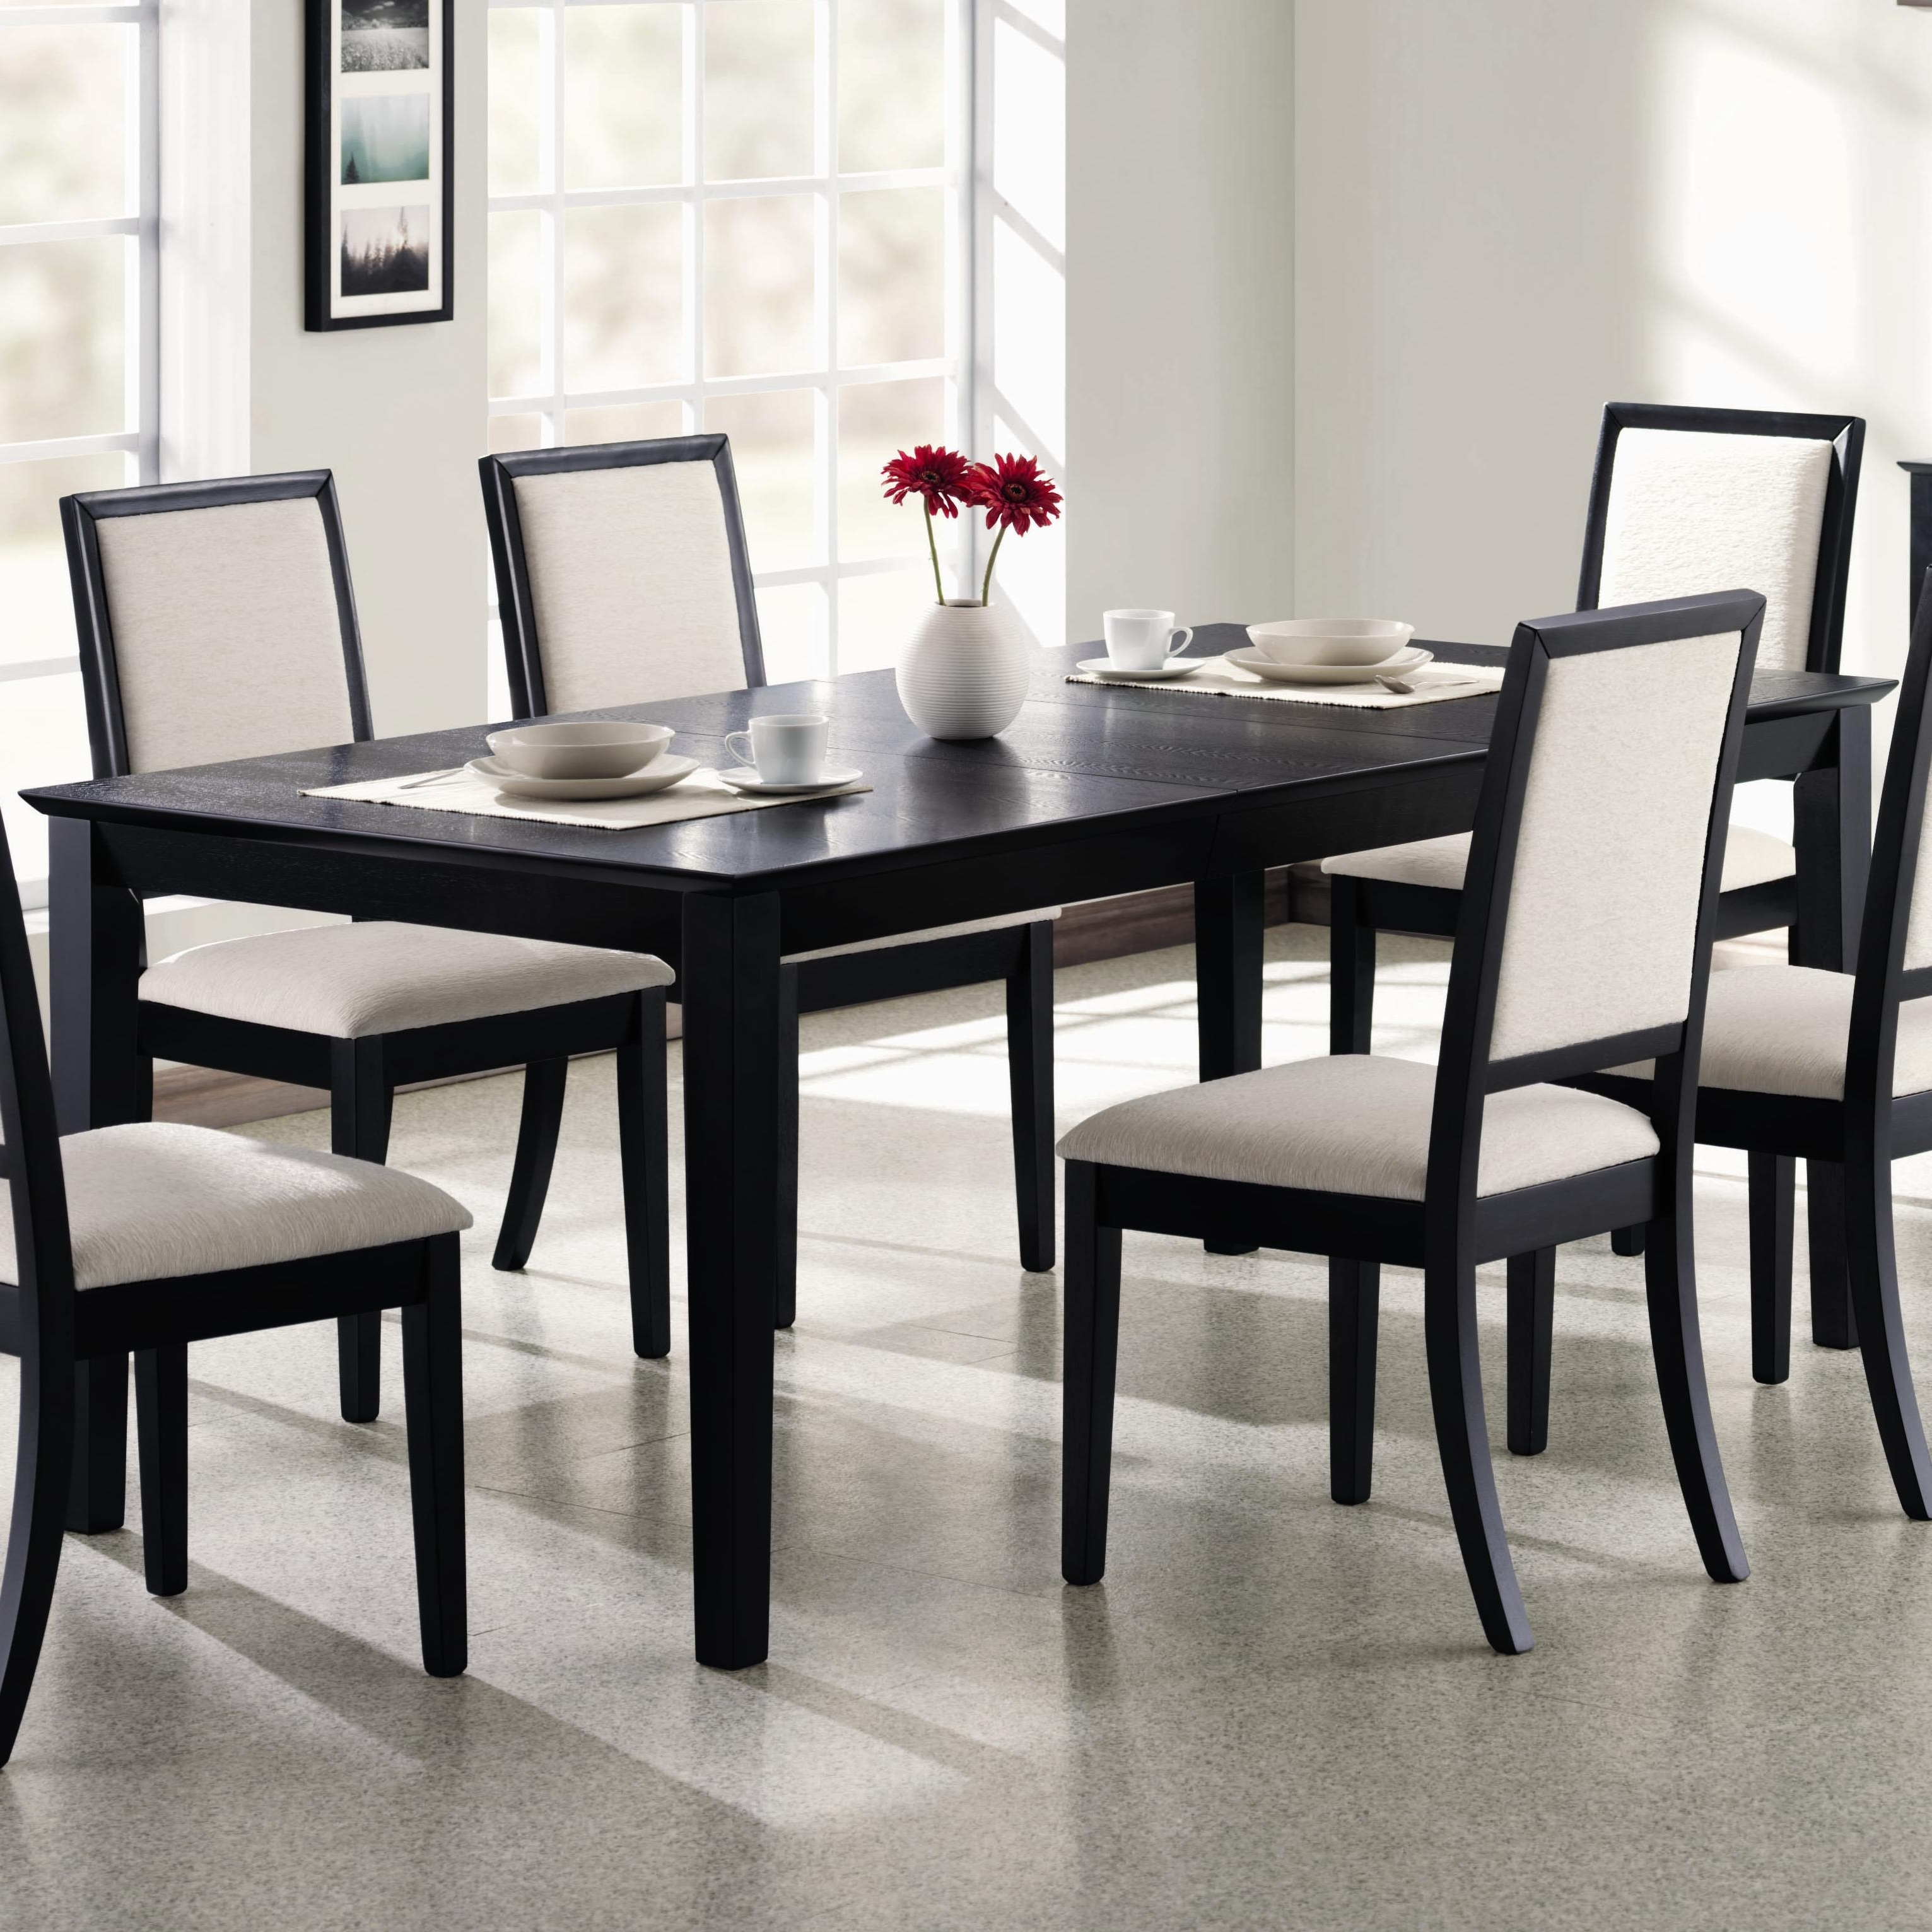 "Sleek Dining Tables Regarding Preferred Coaster Lexton Rectangular Dining Table With 18"" Leaf (View 22 of 25)"